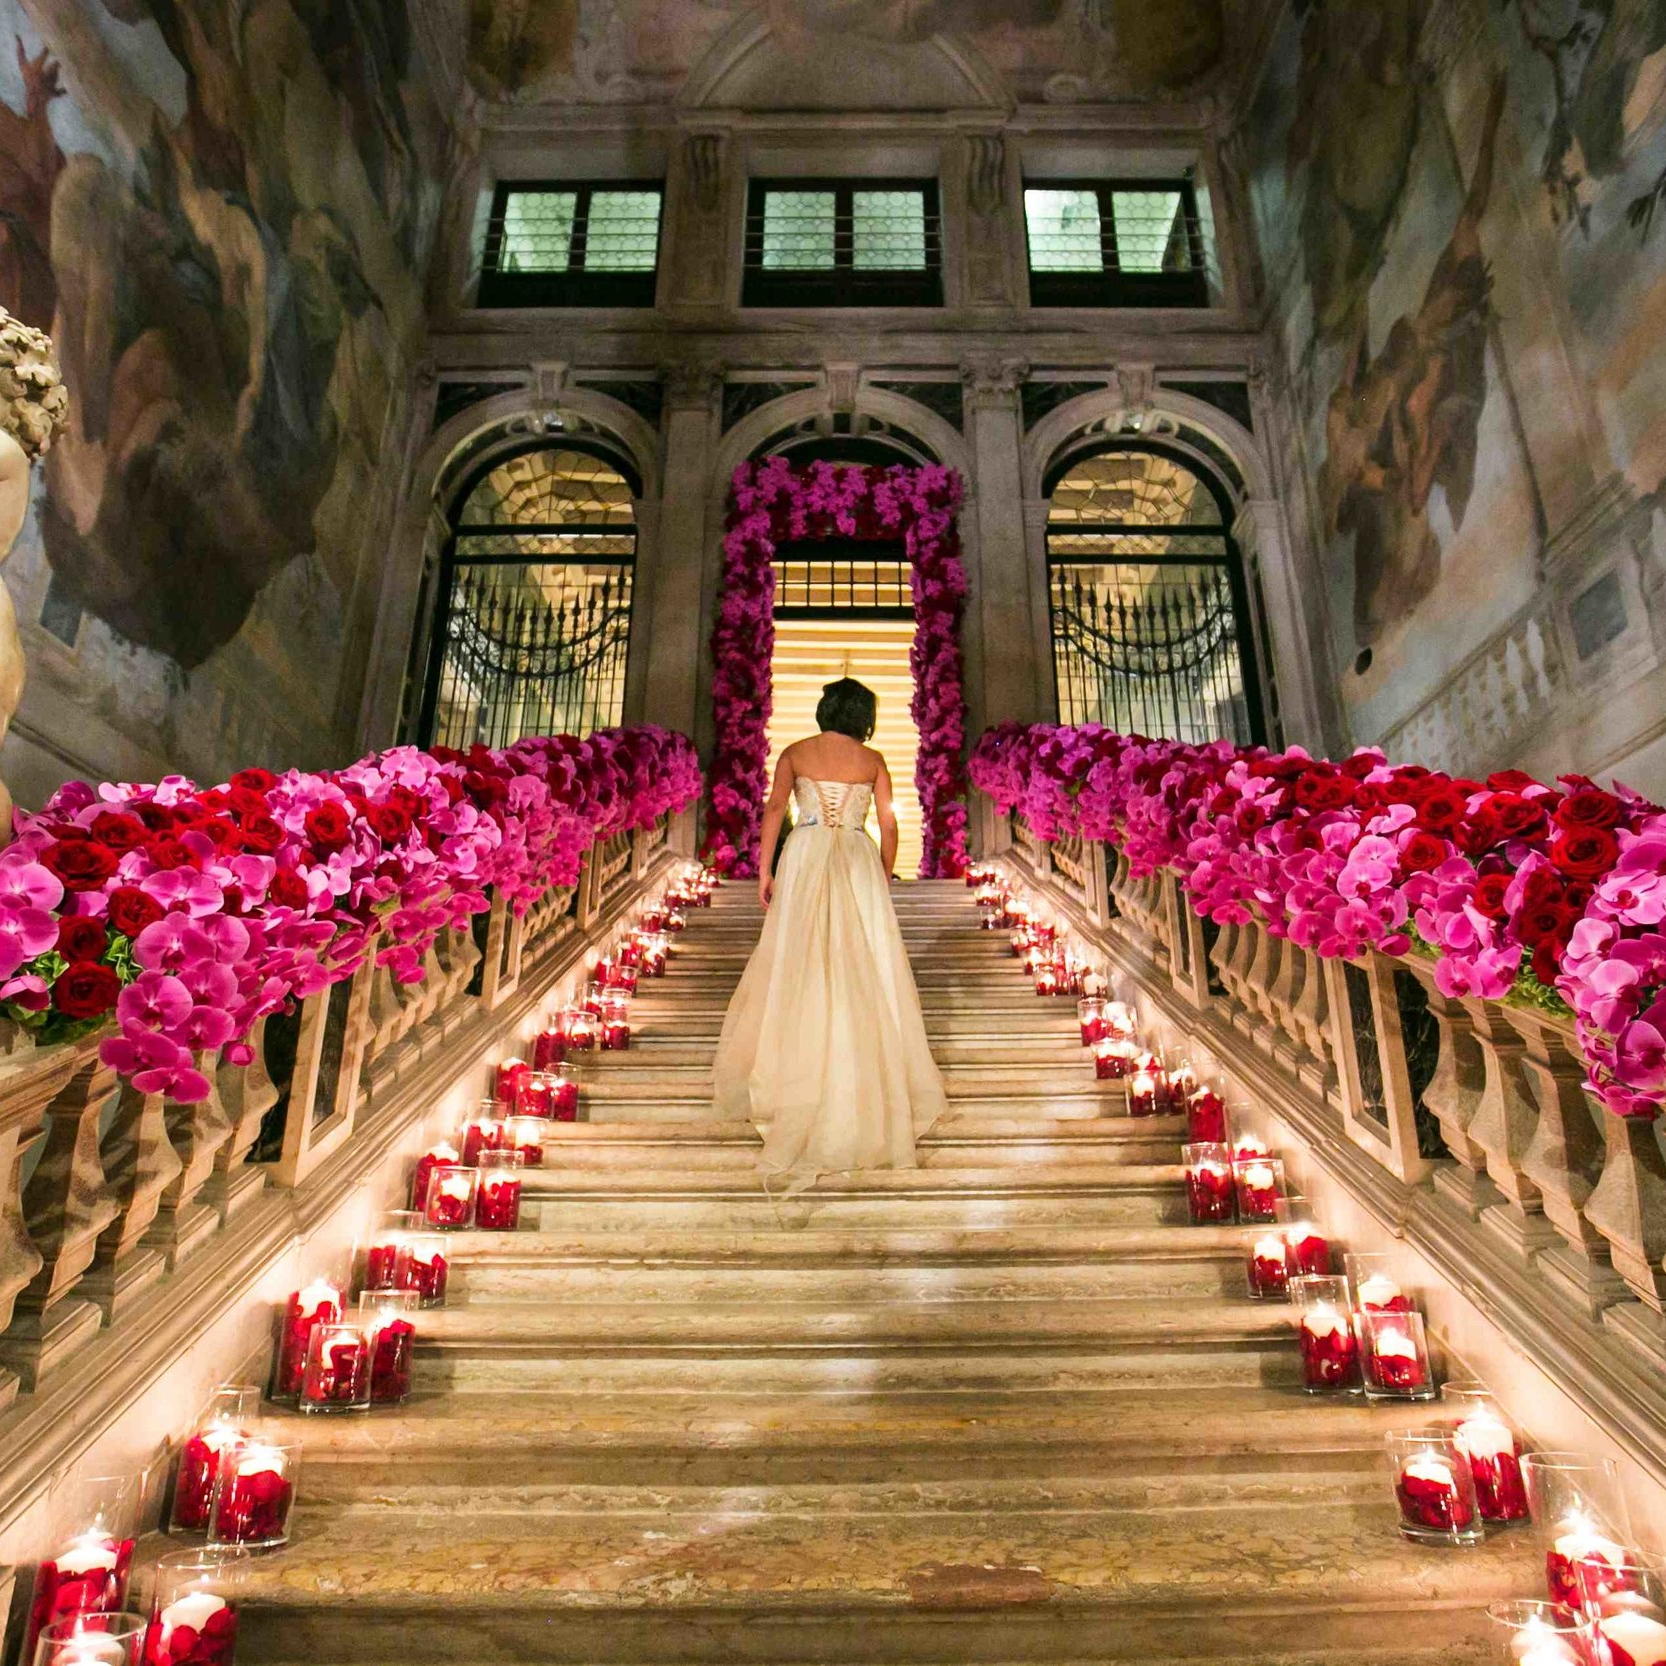 nadia_duran_destination_weddings_venice_italy.jpg